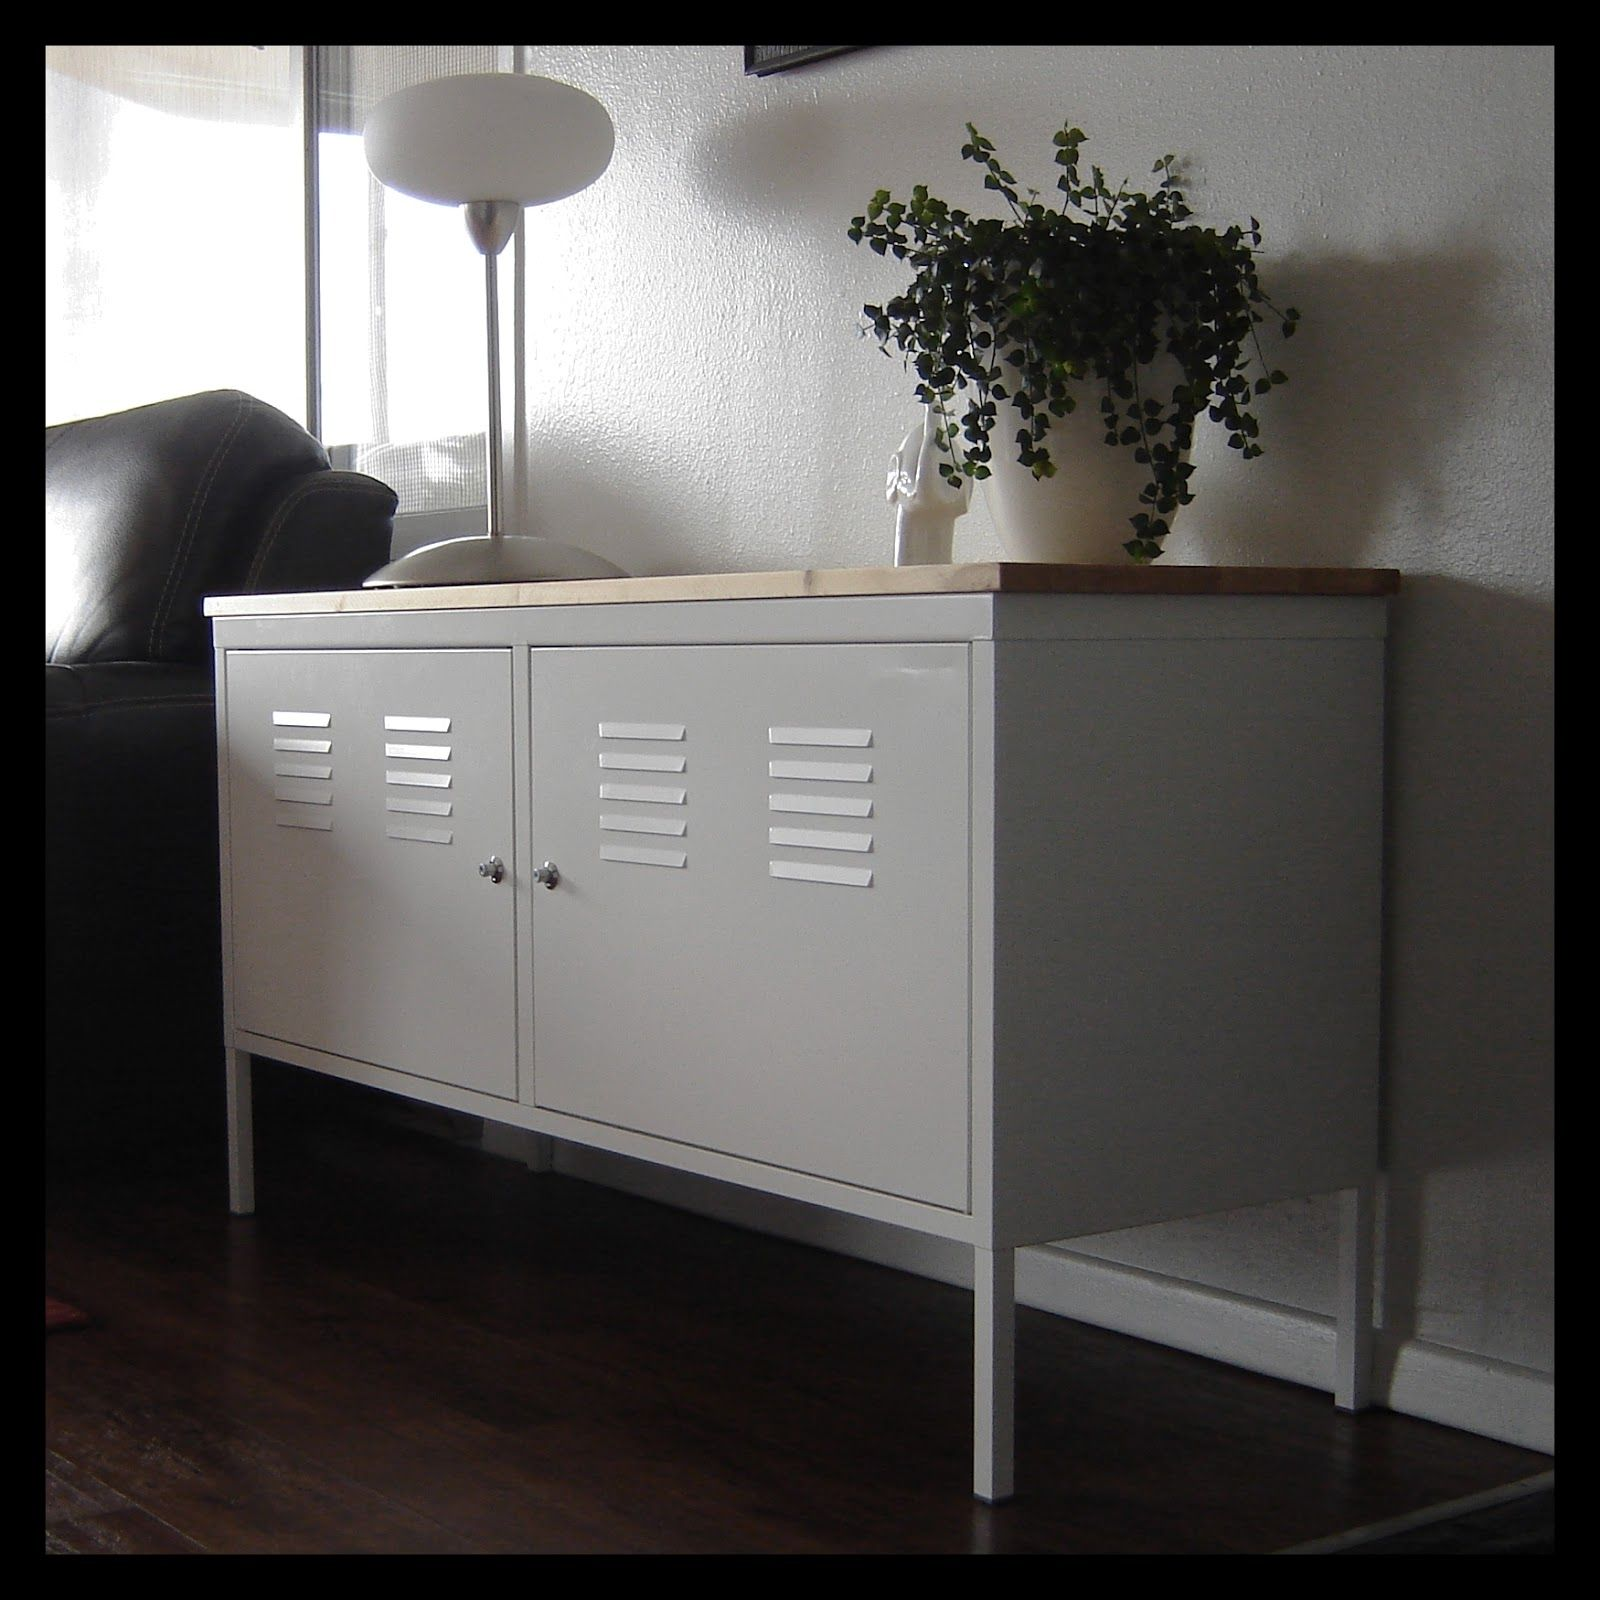 Ikea PS Cabinet hack. | Ikea. | Pinterest | Ikea ps cabinet, Ikea ...